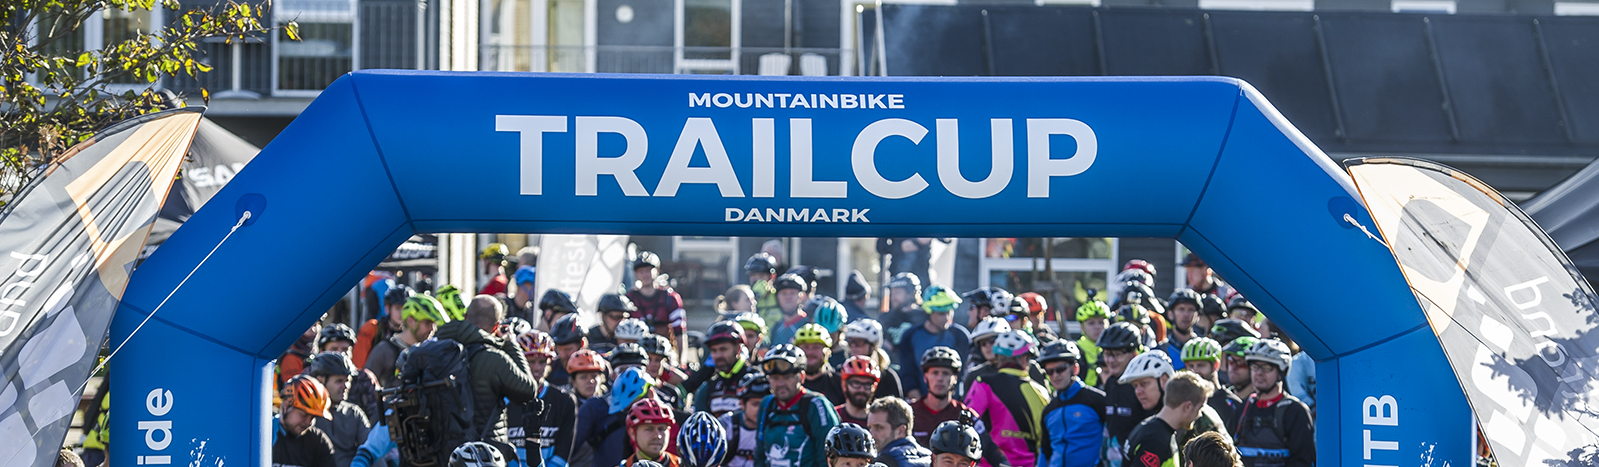 Mountainbike Trailcup 2019